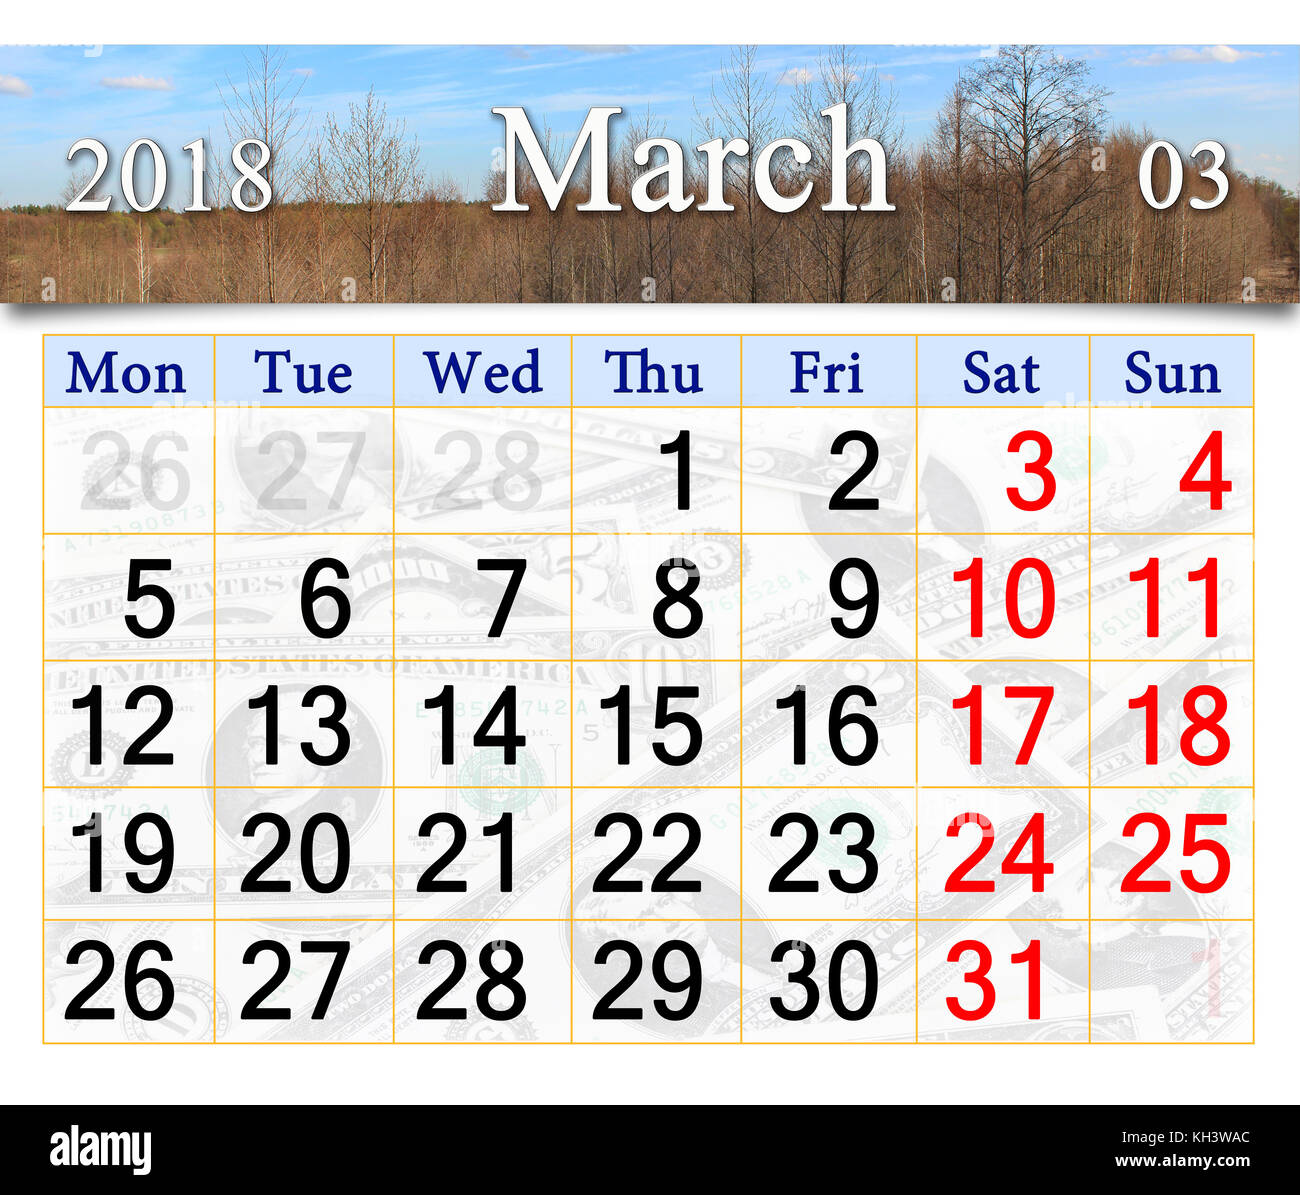 calendar for march 2018 with trees in the early spring